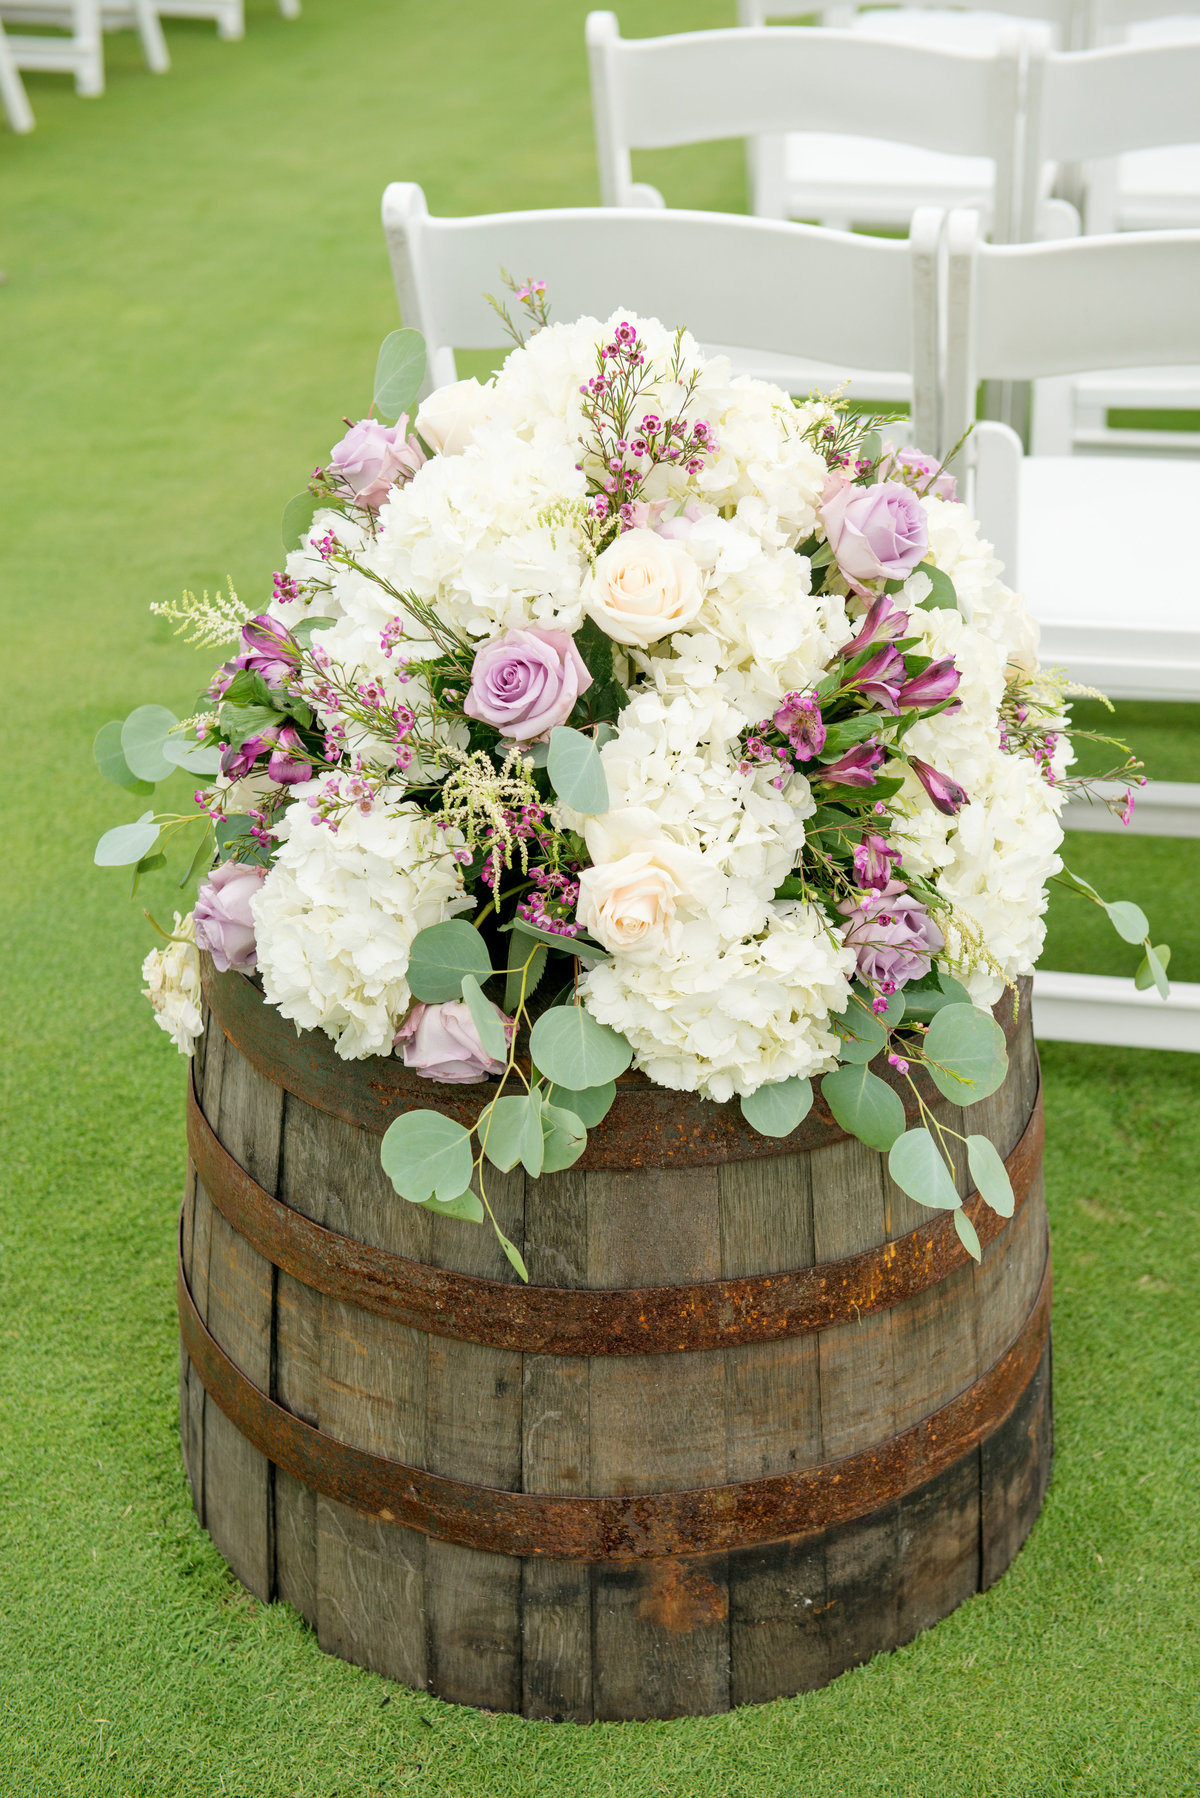 flowers and decoration from wedding ceremony at Willow Creek Golf and Country Club